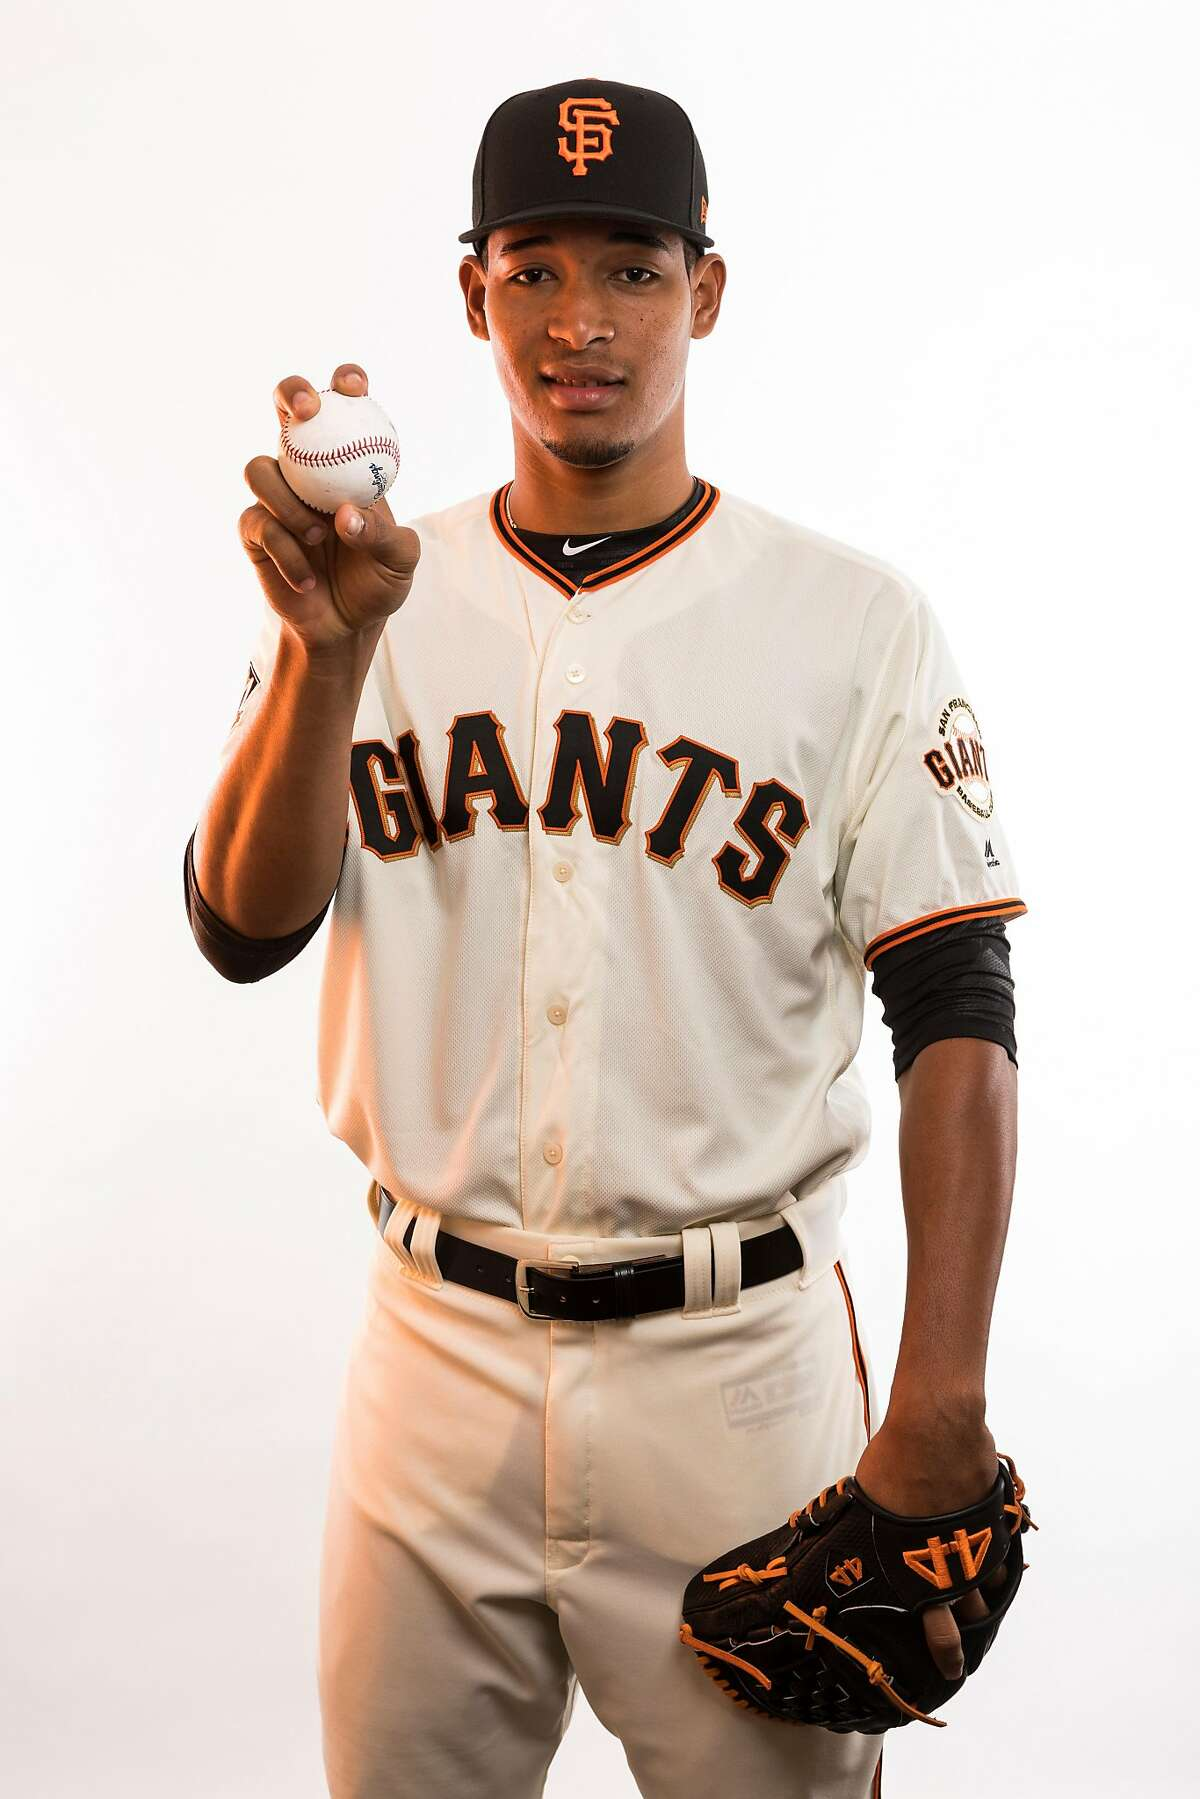 SCOTTSDALE, AZ - FEBRUARY 20: Pitcher Julian Fernandez (70) poses for a photo during the San Francisco Giants photo day on Tuesday, Feb. 20, 2018 at Scottsdale Stadium in Scottsdale, Ariz. (Photo by Ric Tapia/Icon Sportswire via Getty Images)